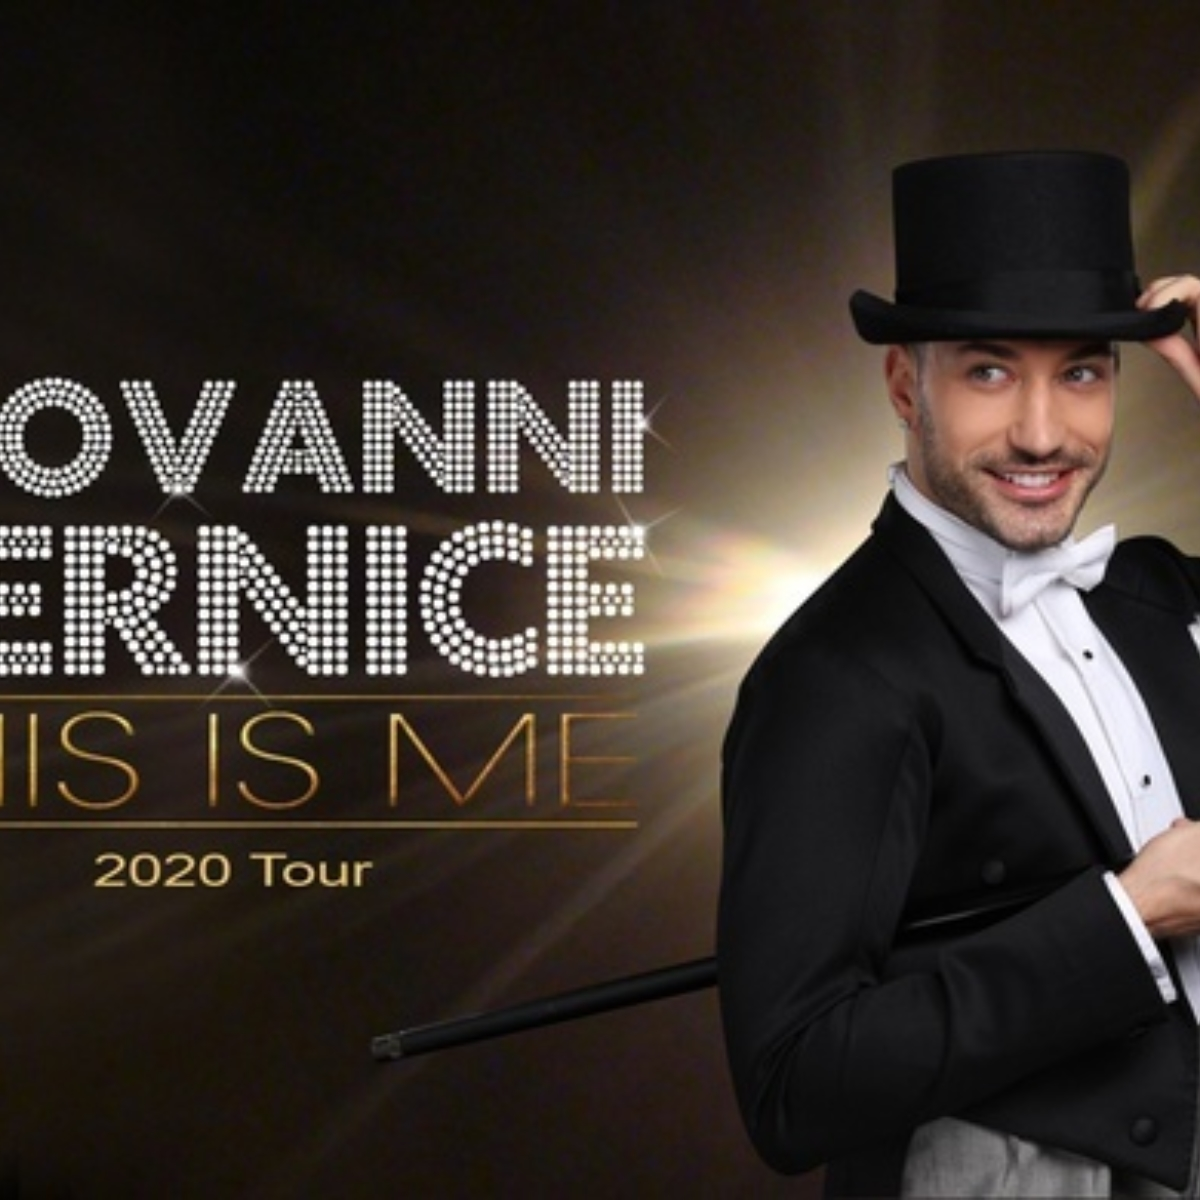 Giovanni Pernice: This Is Me (Gala Performance) Images